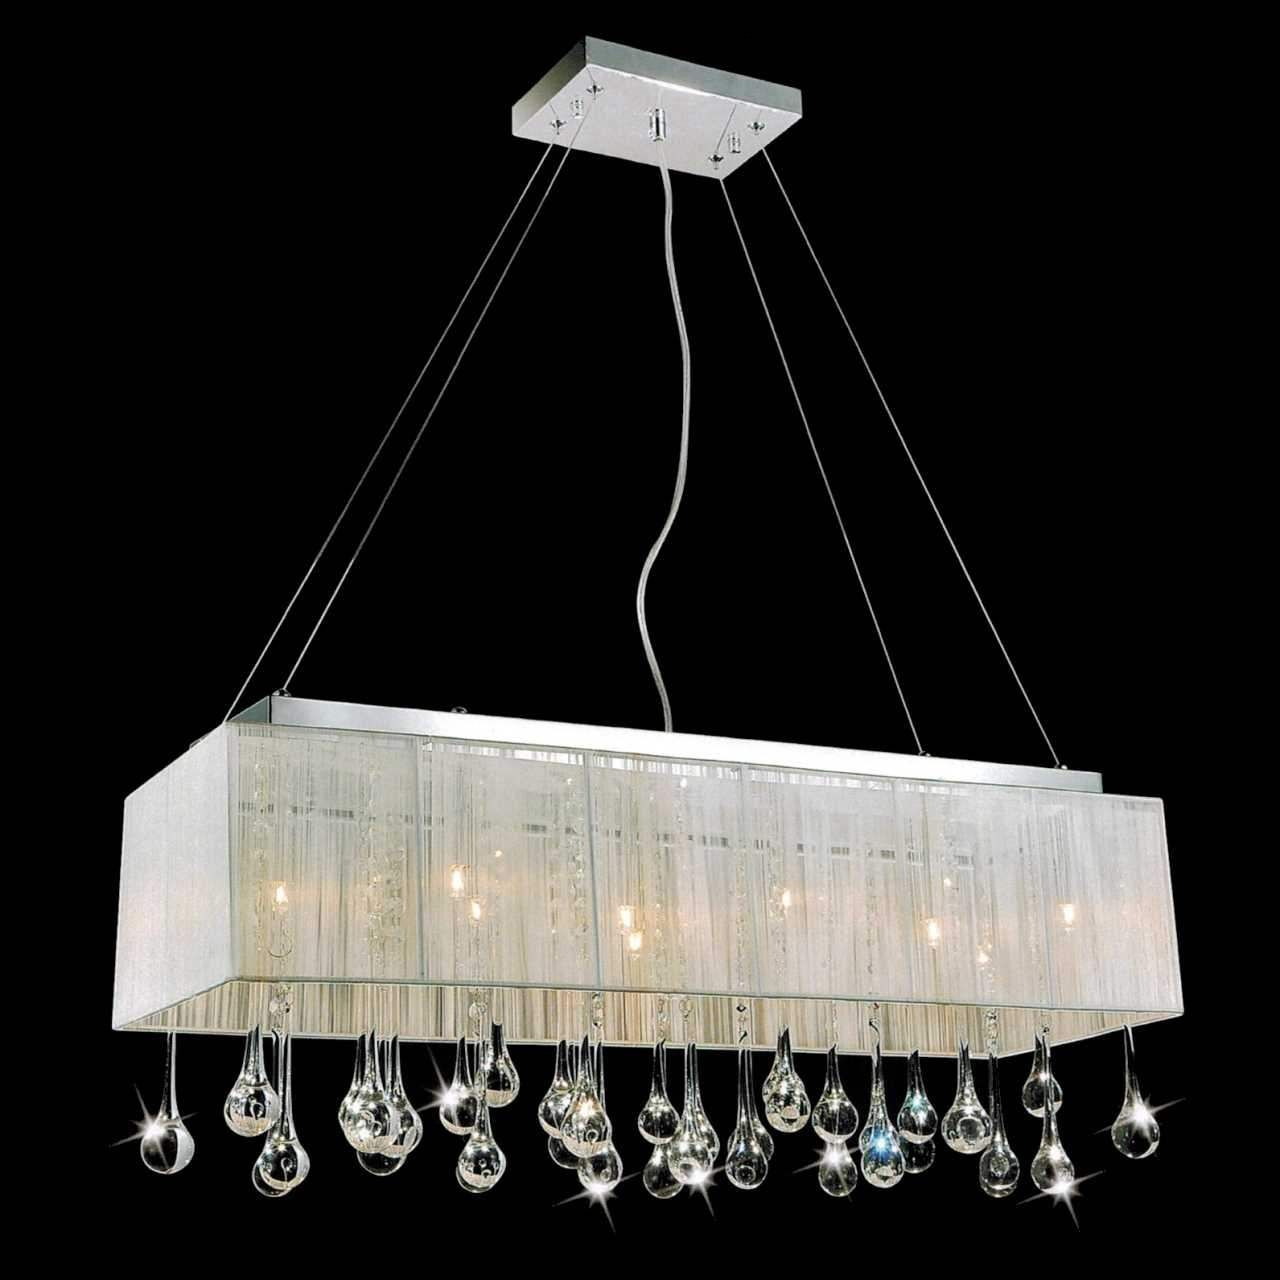 32 Gocce Modern String Shade Crystal Rectangular Chandelier – White Chandelier with Shades